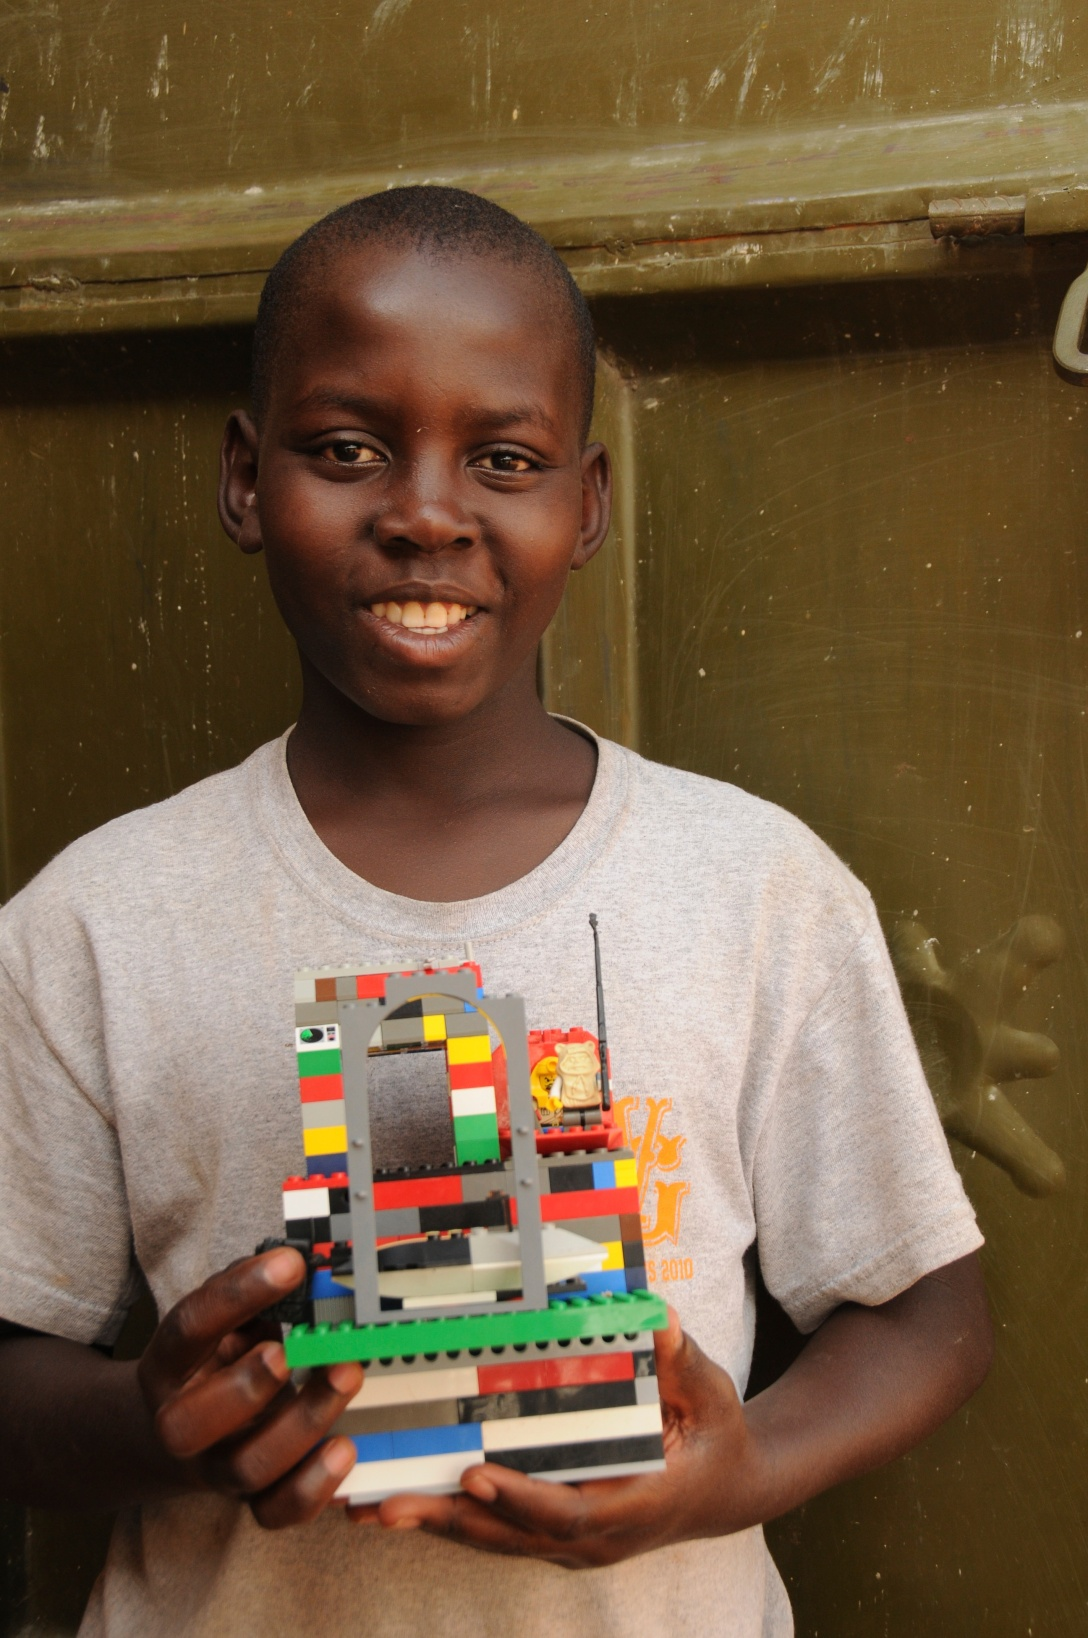 Musa and his house he will build when he gets to America. He is determined for someone to bring him here.